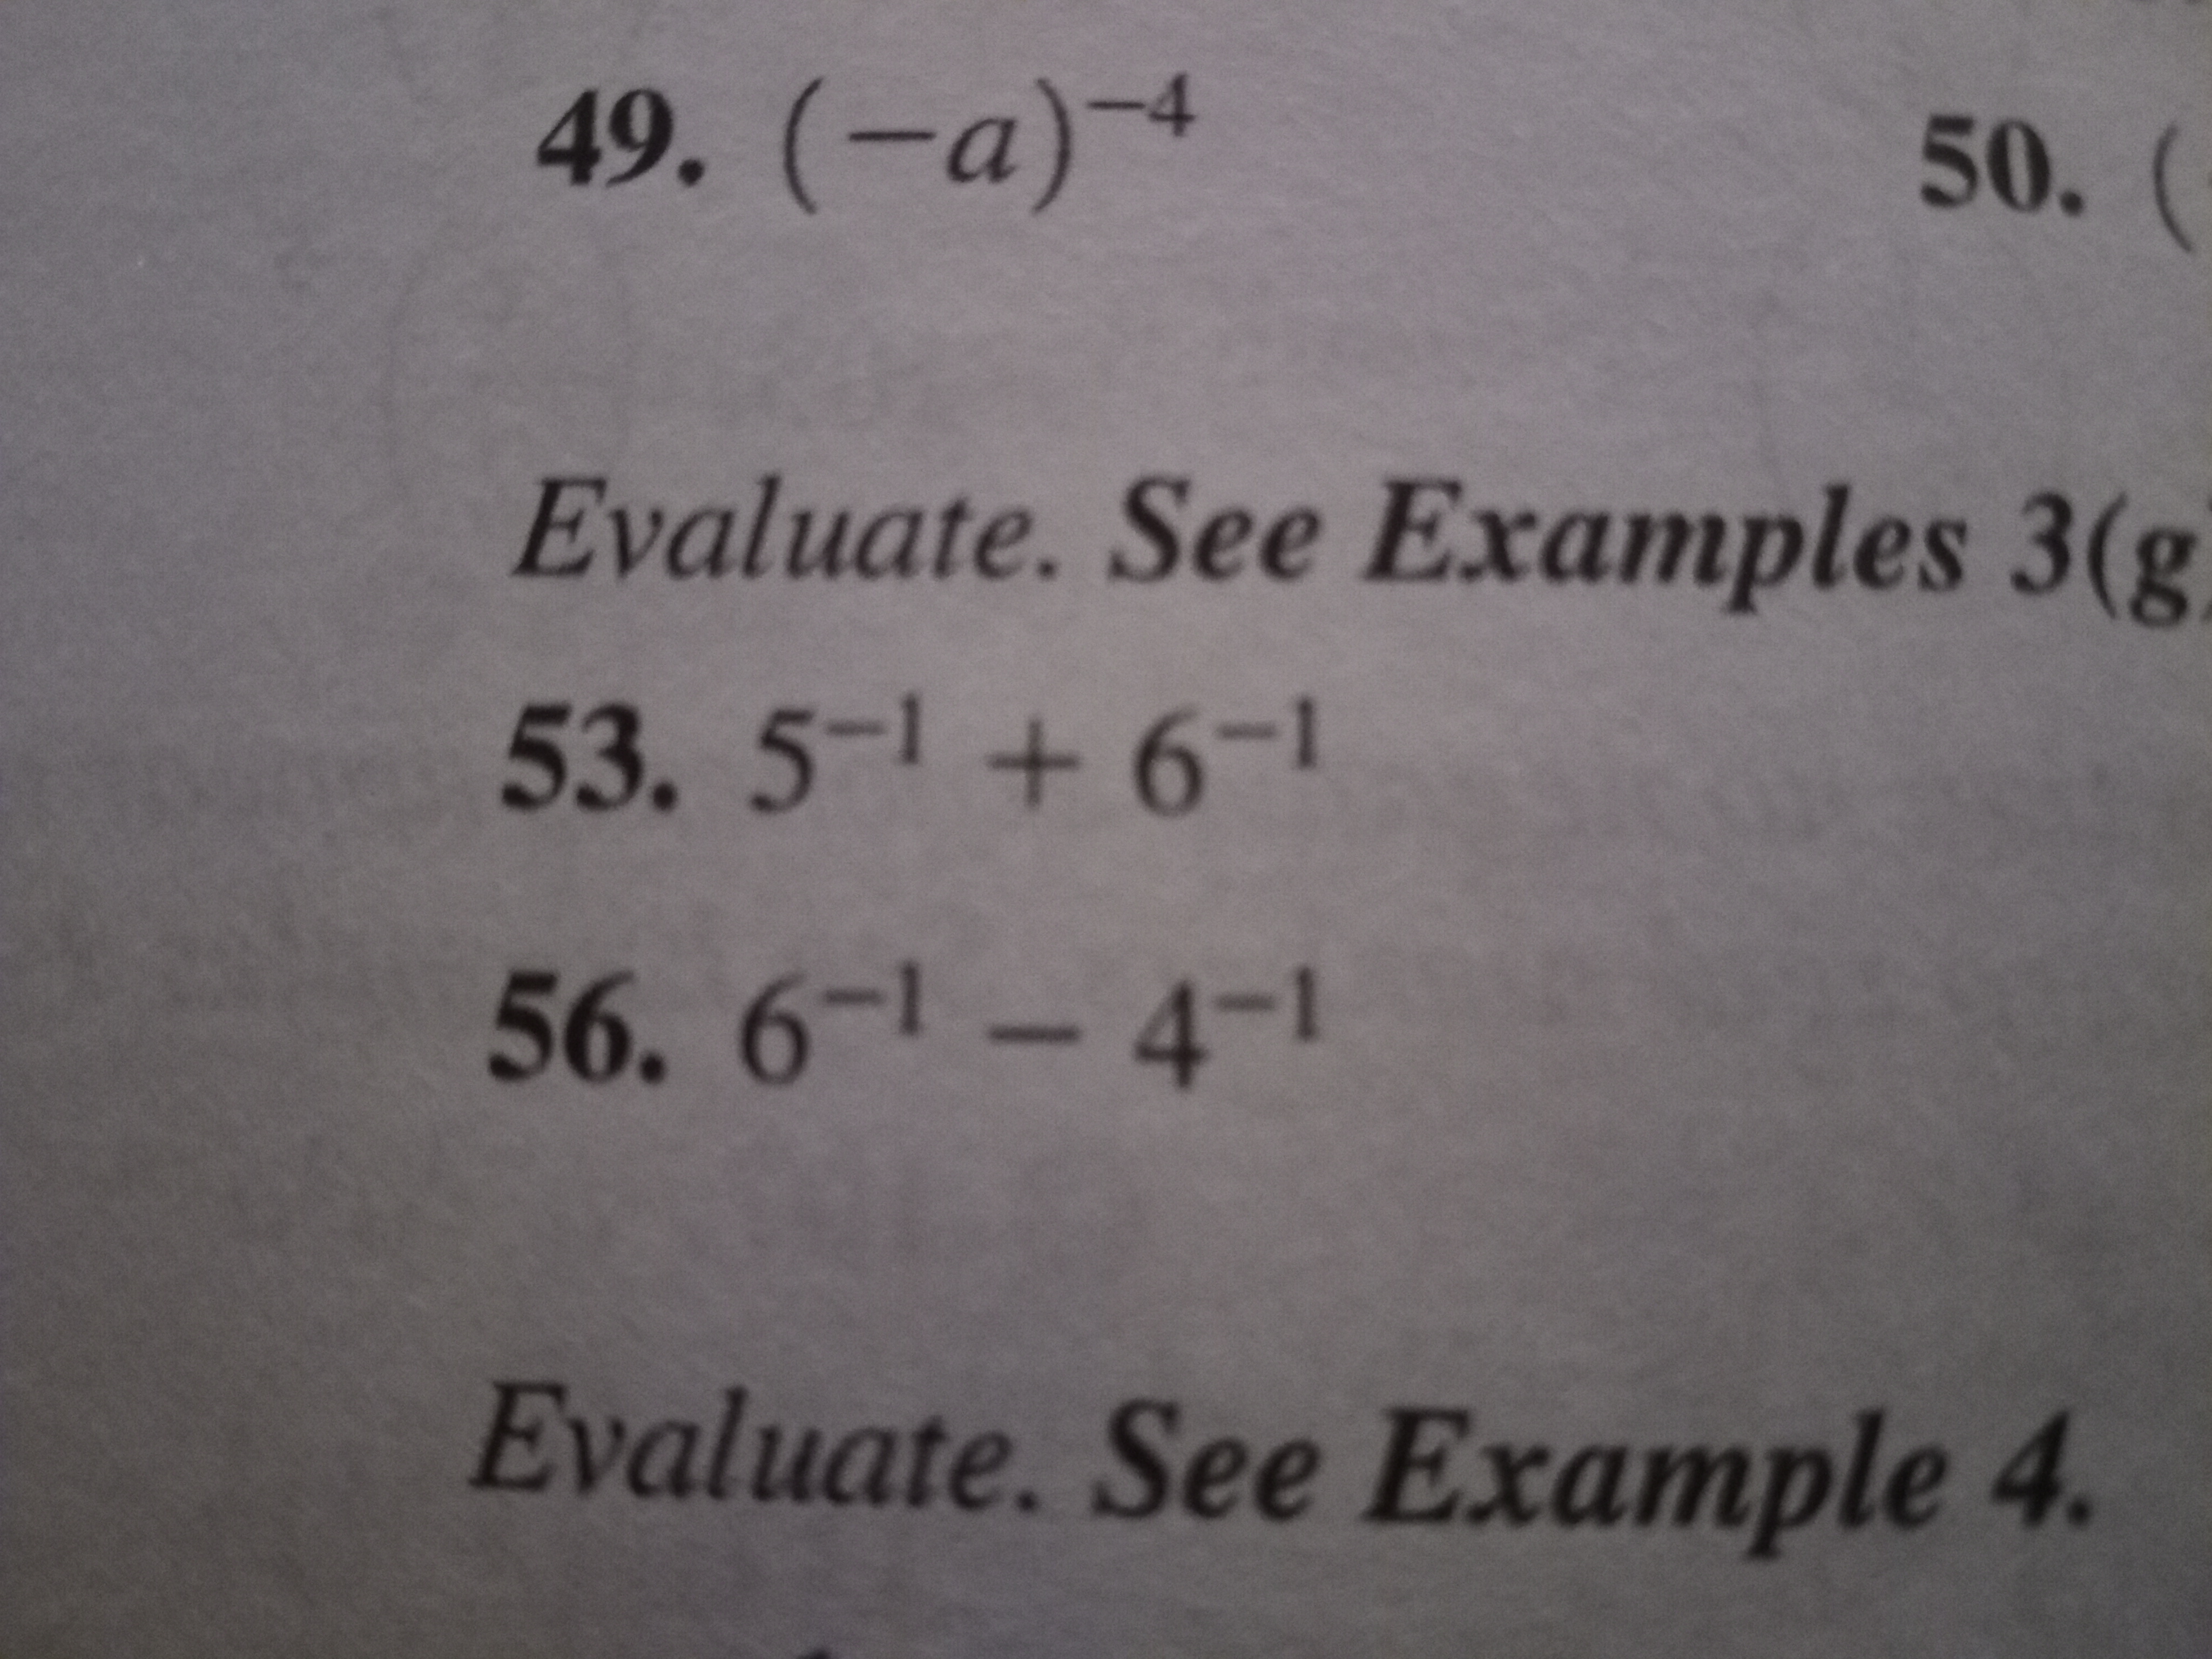 50. ( 49. (-а)4 Evaluate. See Examples 3(g 53. 51 +6-1 56. 6-1-4-1 Evaluate. See Example 4.